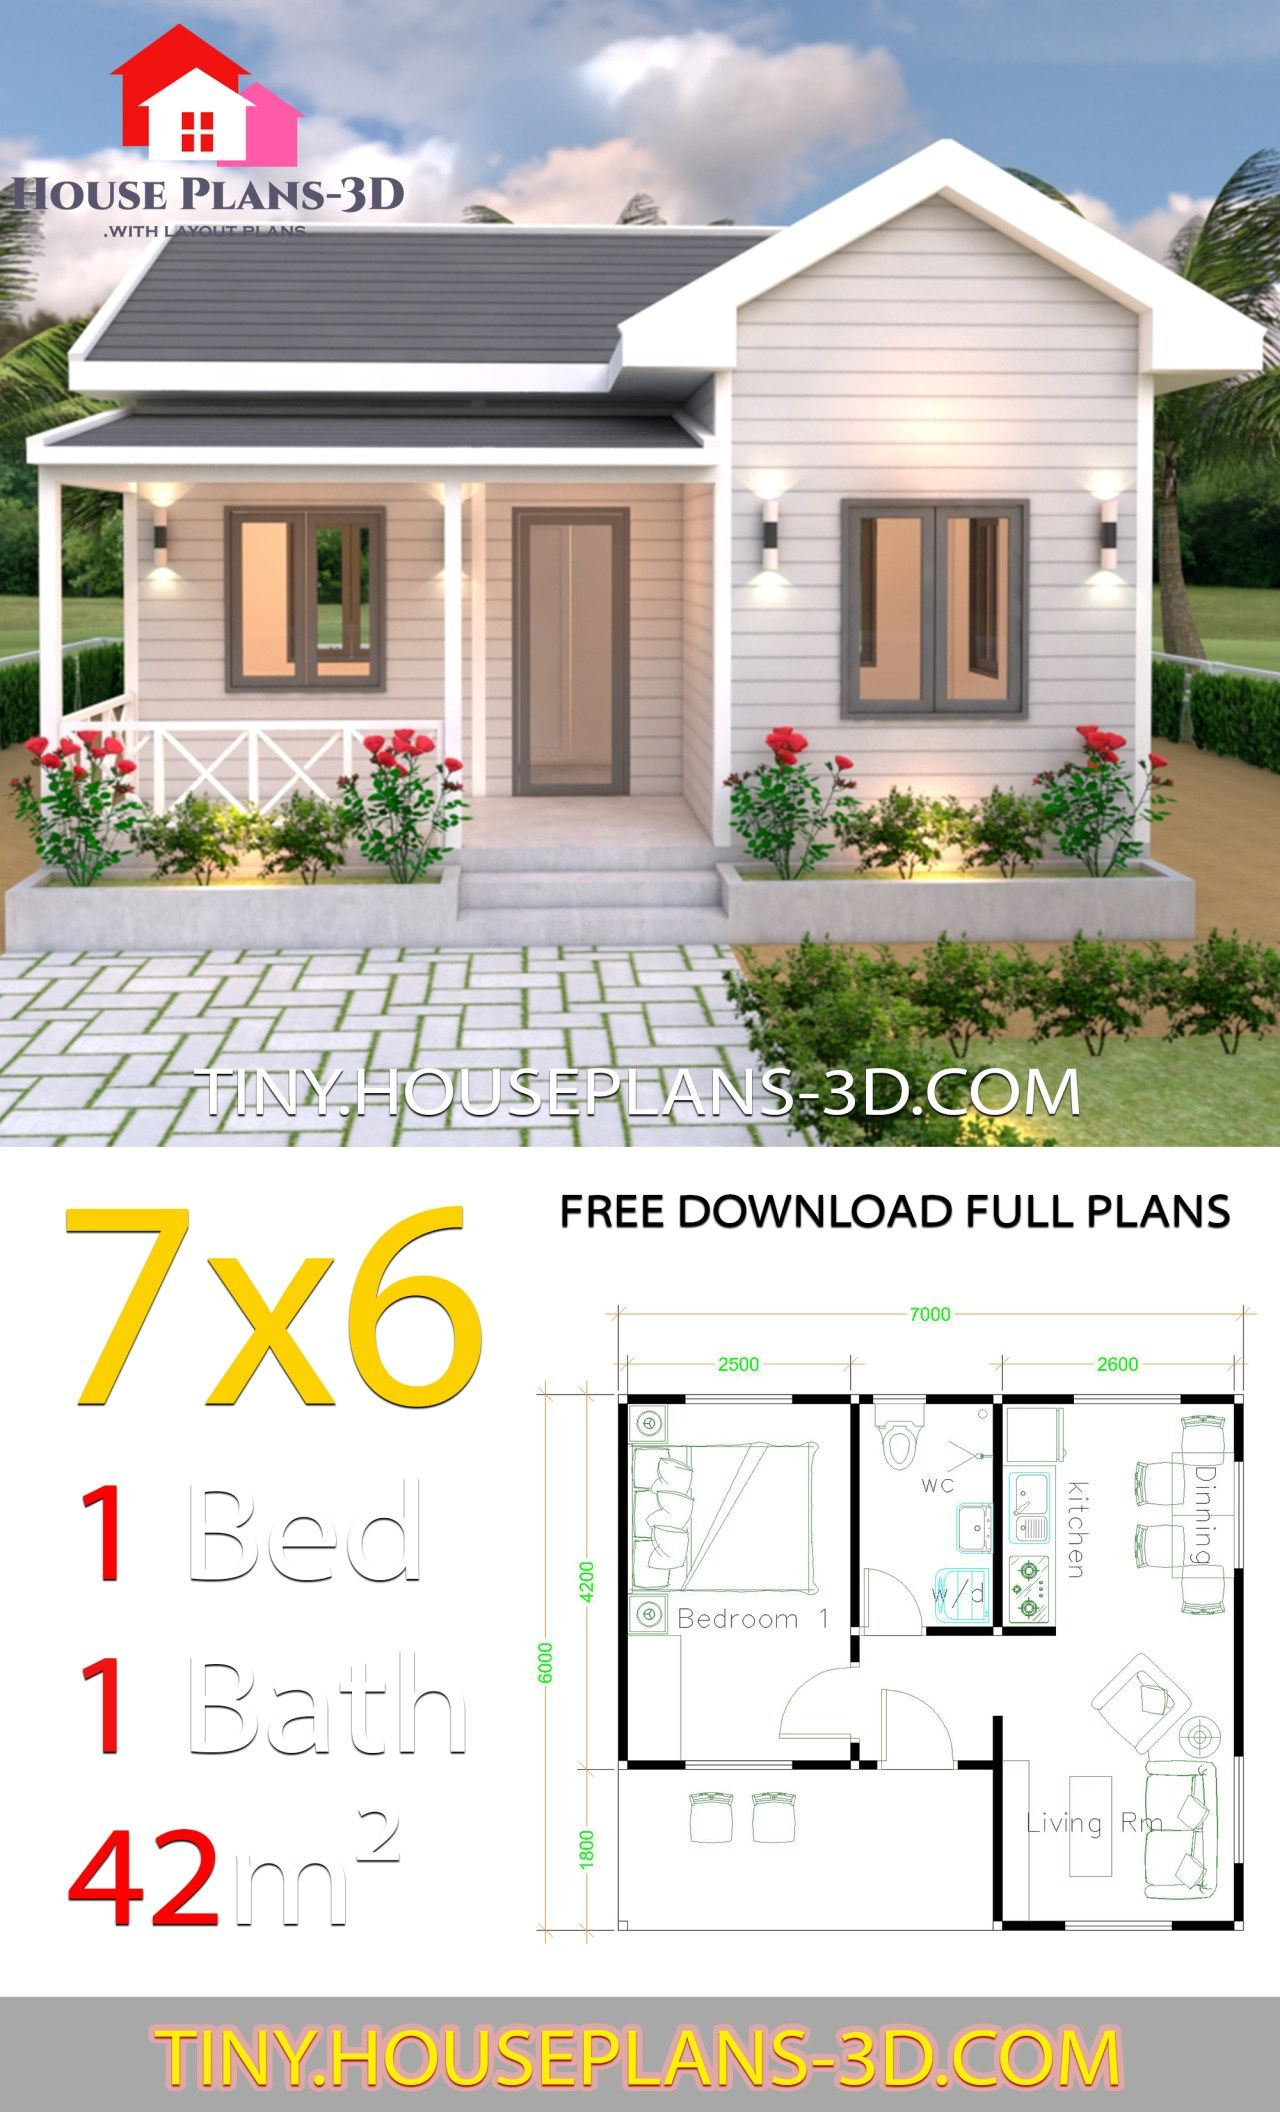 Tiny House Plans 7x6 With One Bedroom Cross Gable Roof Tiny House Plans Cottage House Plans House Plans Country Cottage House Plans